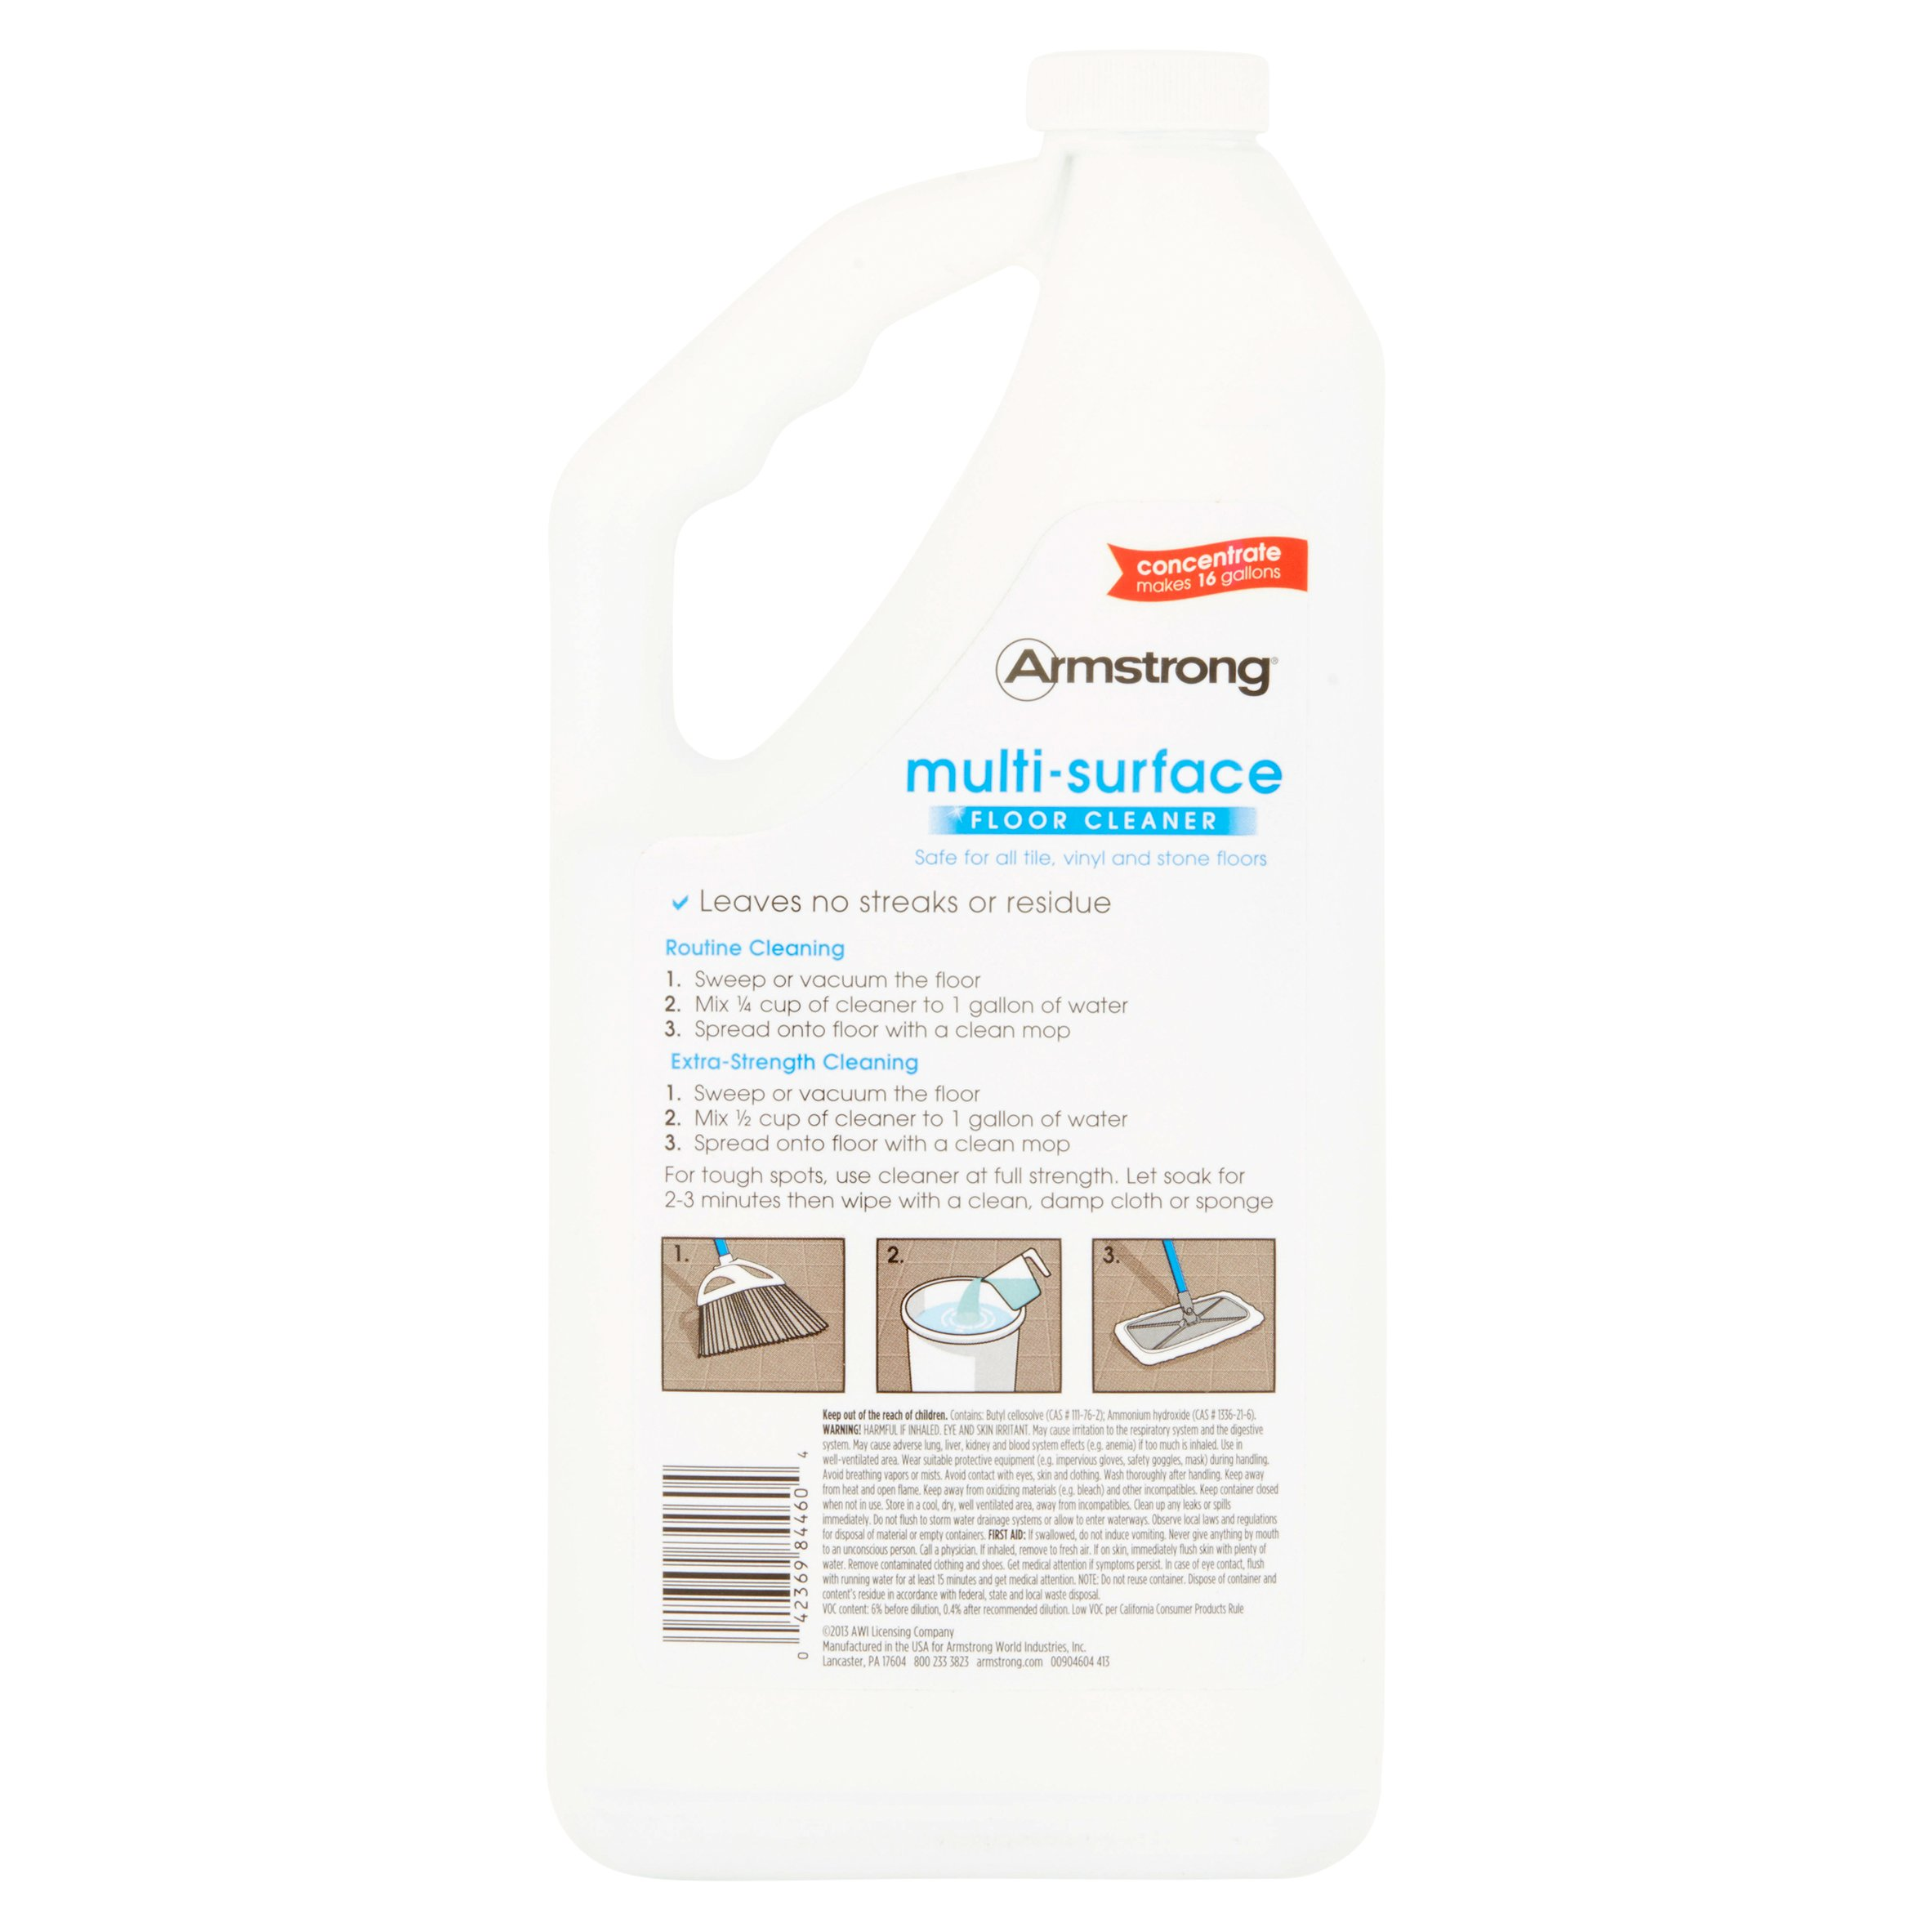 Armstrong tile vinyl floor cleaner msds tile designs armstrong tile vinyl floor cleaner msds designs dailygadgetfo Choice Image